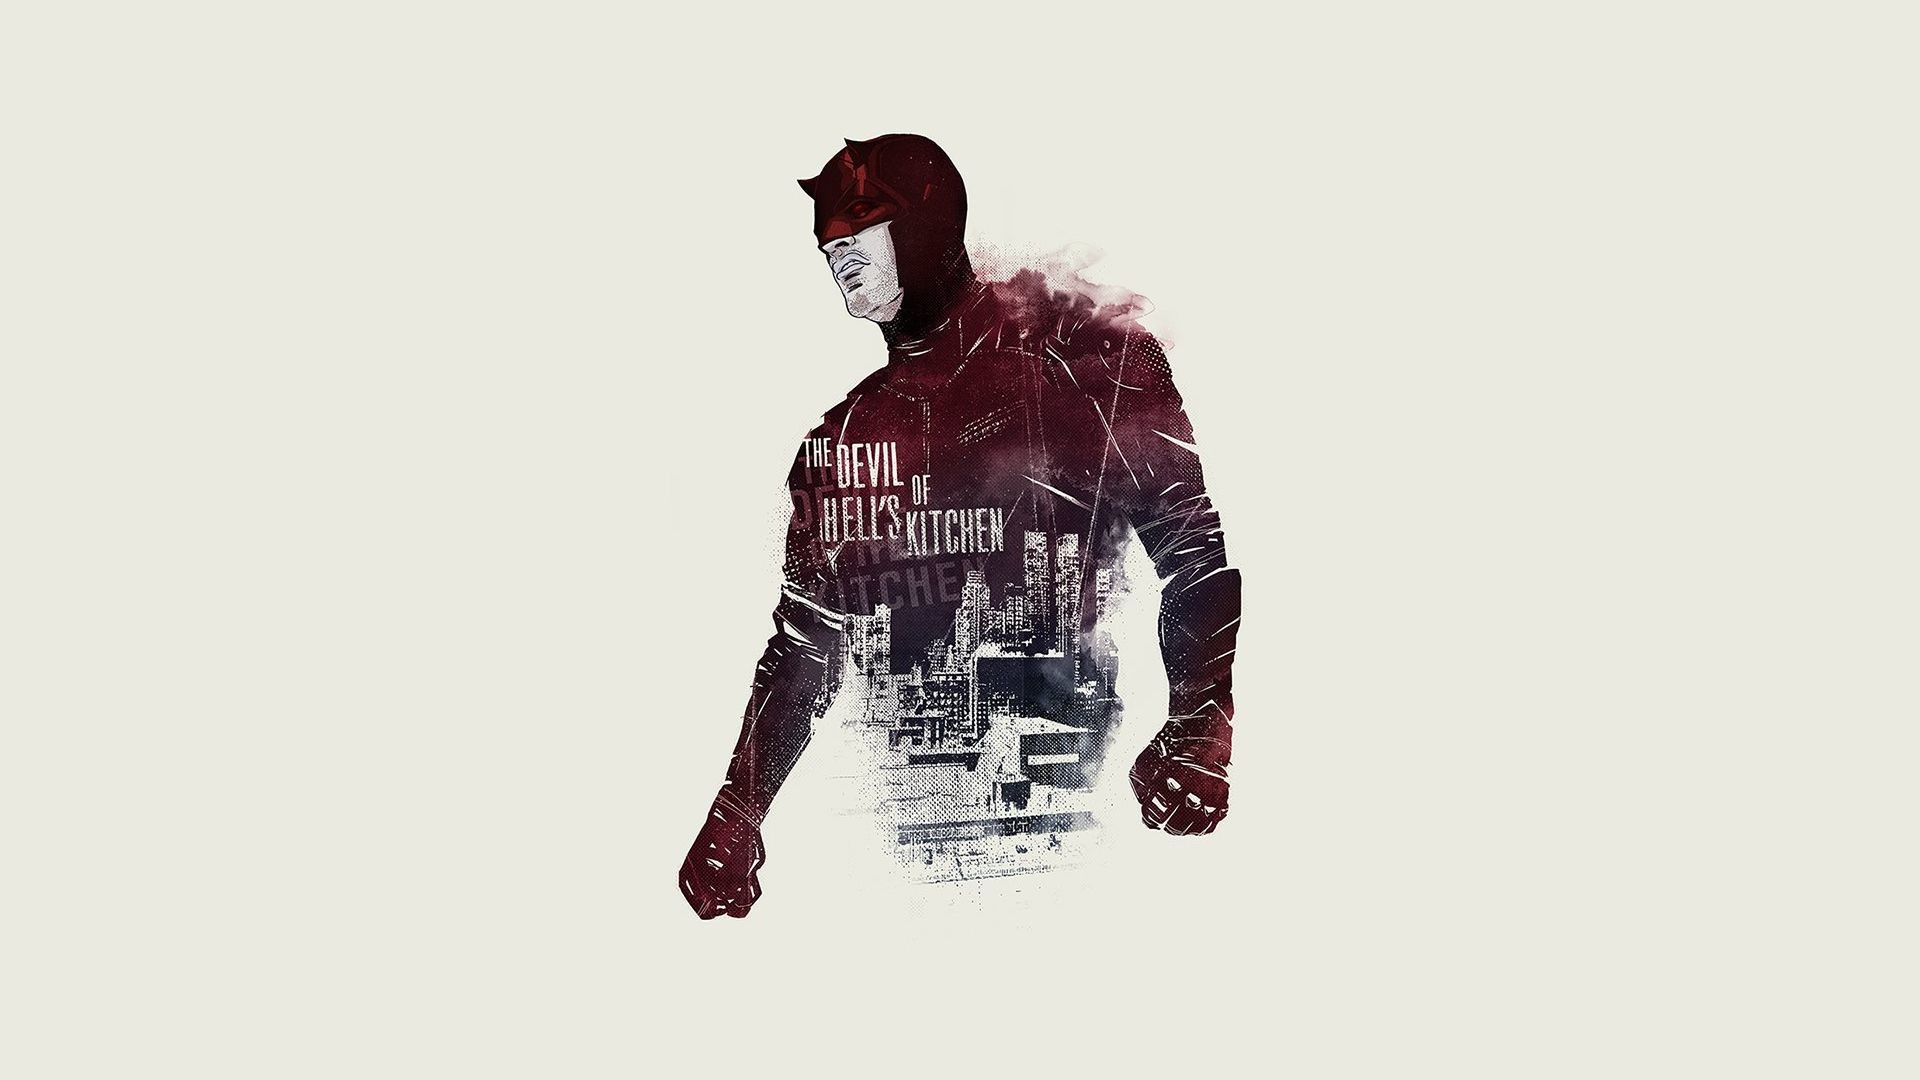 Res: 1920x1080, Daredevil poster turned wallpaper [] Need #iPhone #6S #Plus # Wallpaper/ #Background for #IPhone6SPlus? Follow iPhone 6S Plus 3Wallpapers/ ...